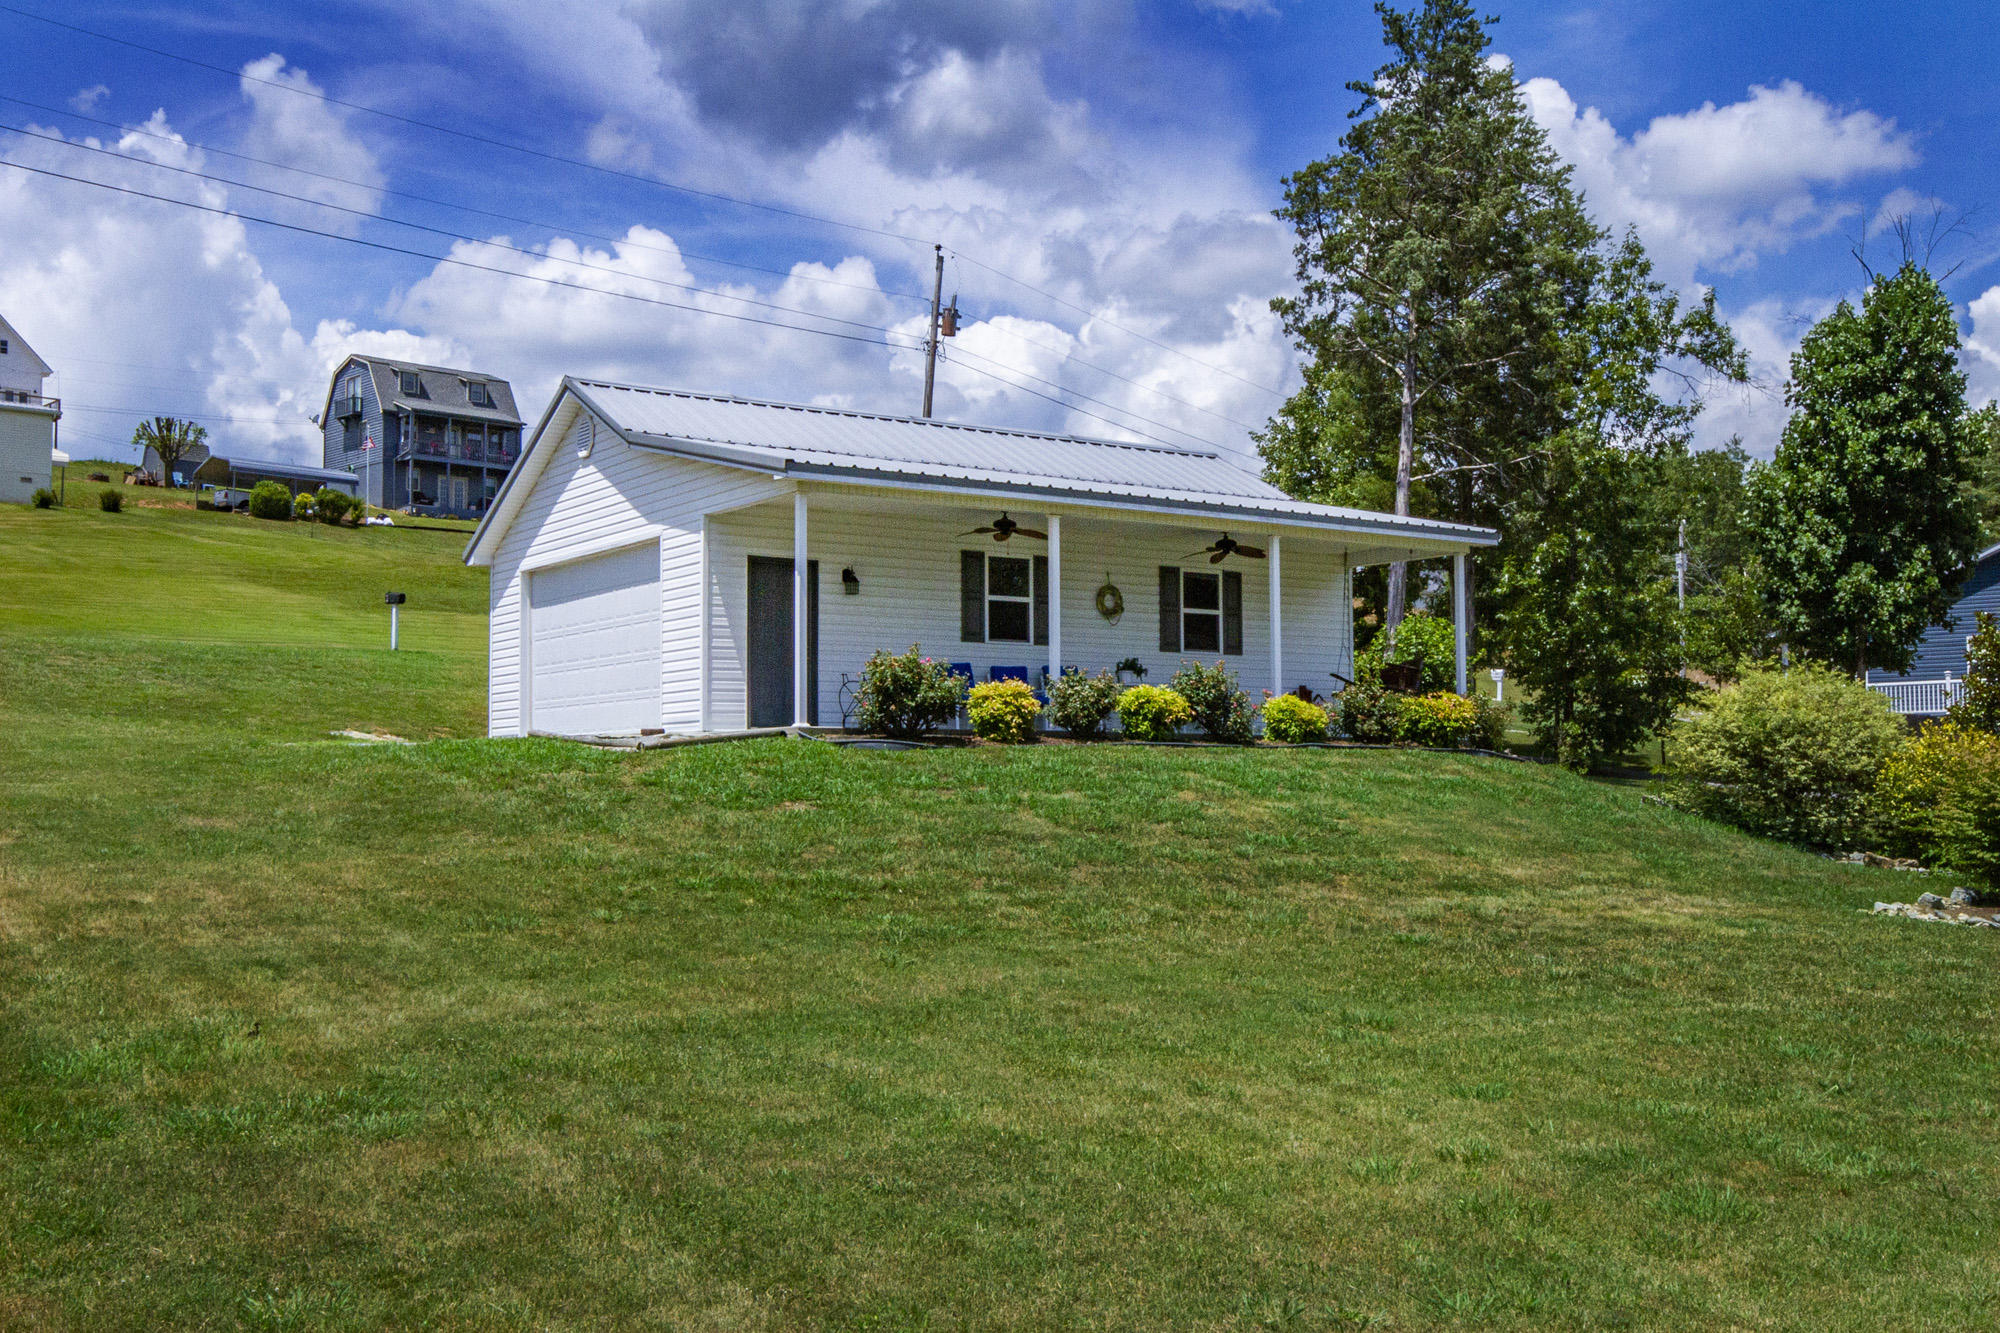 361 Cape Russell Rd: